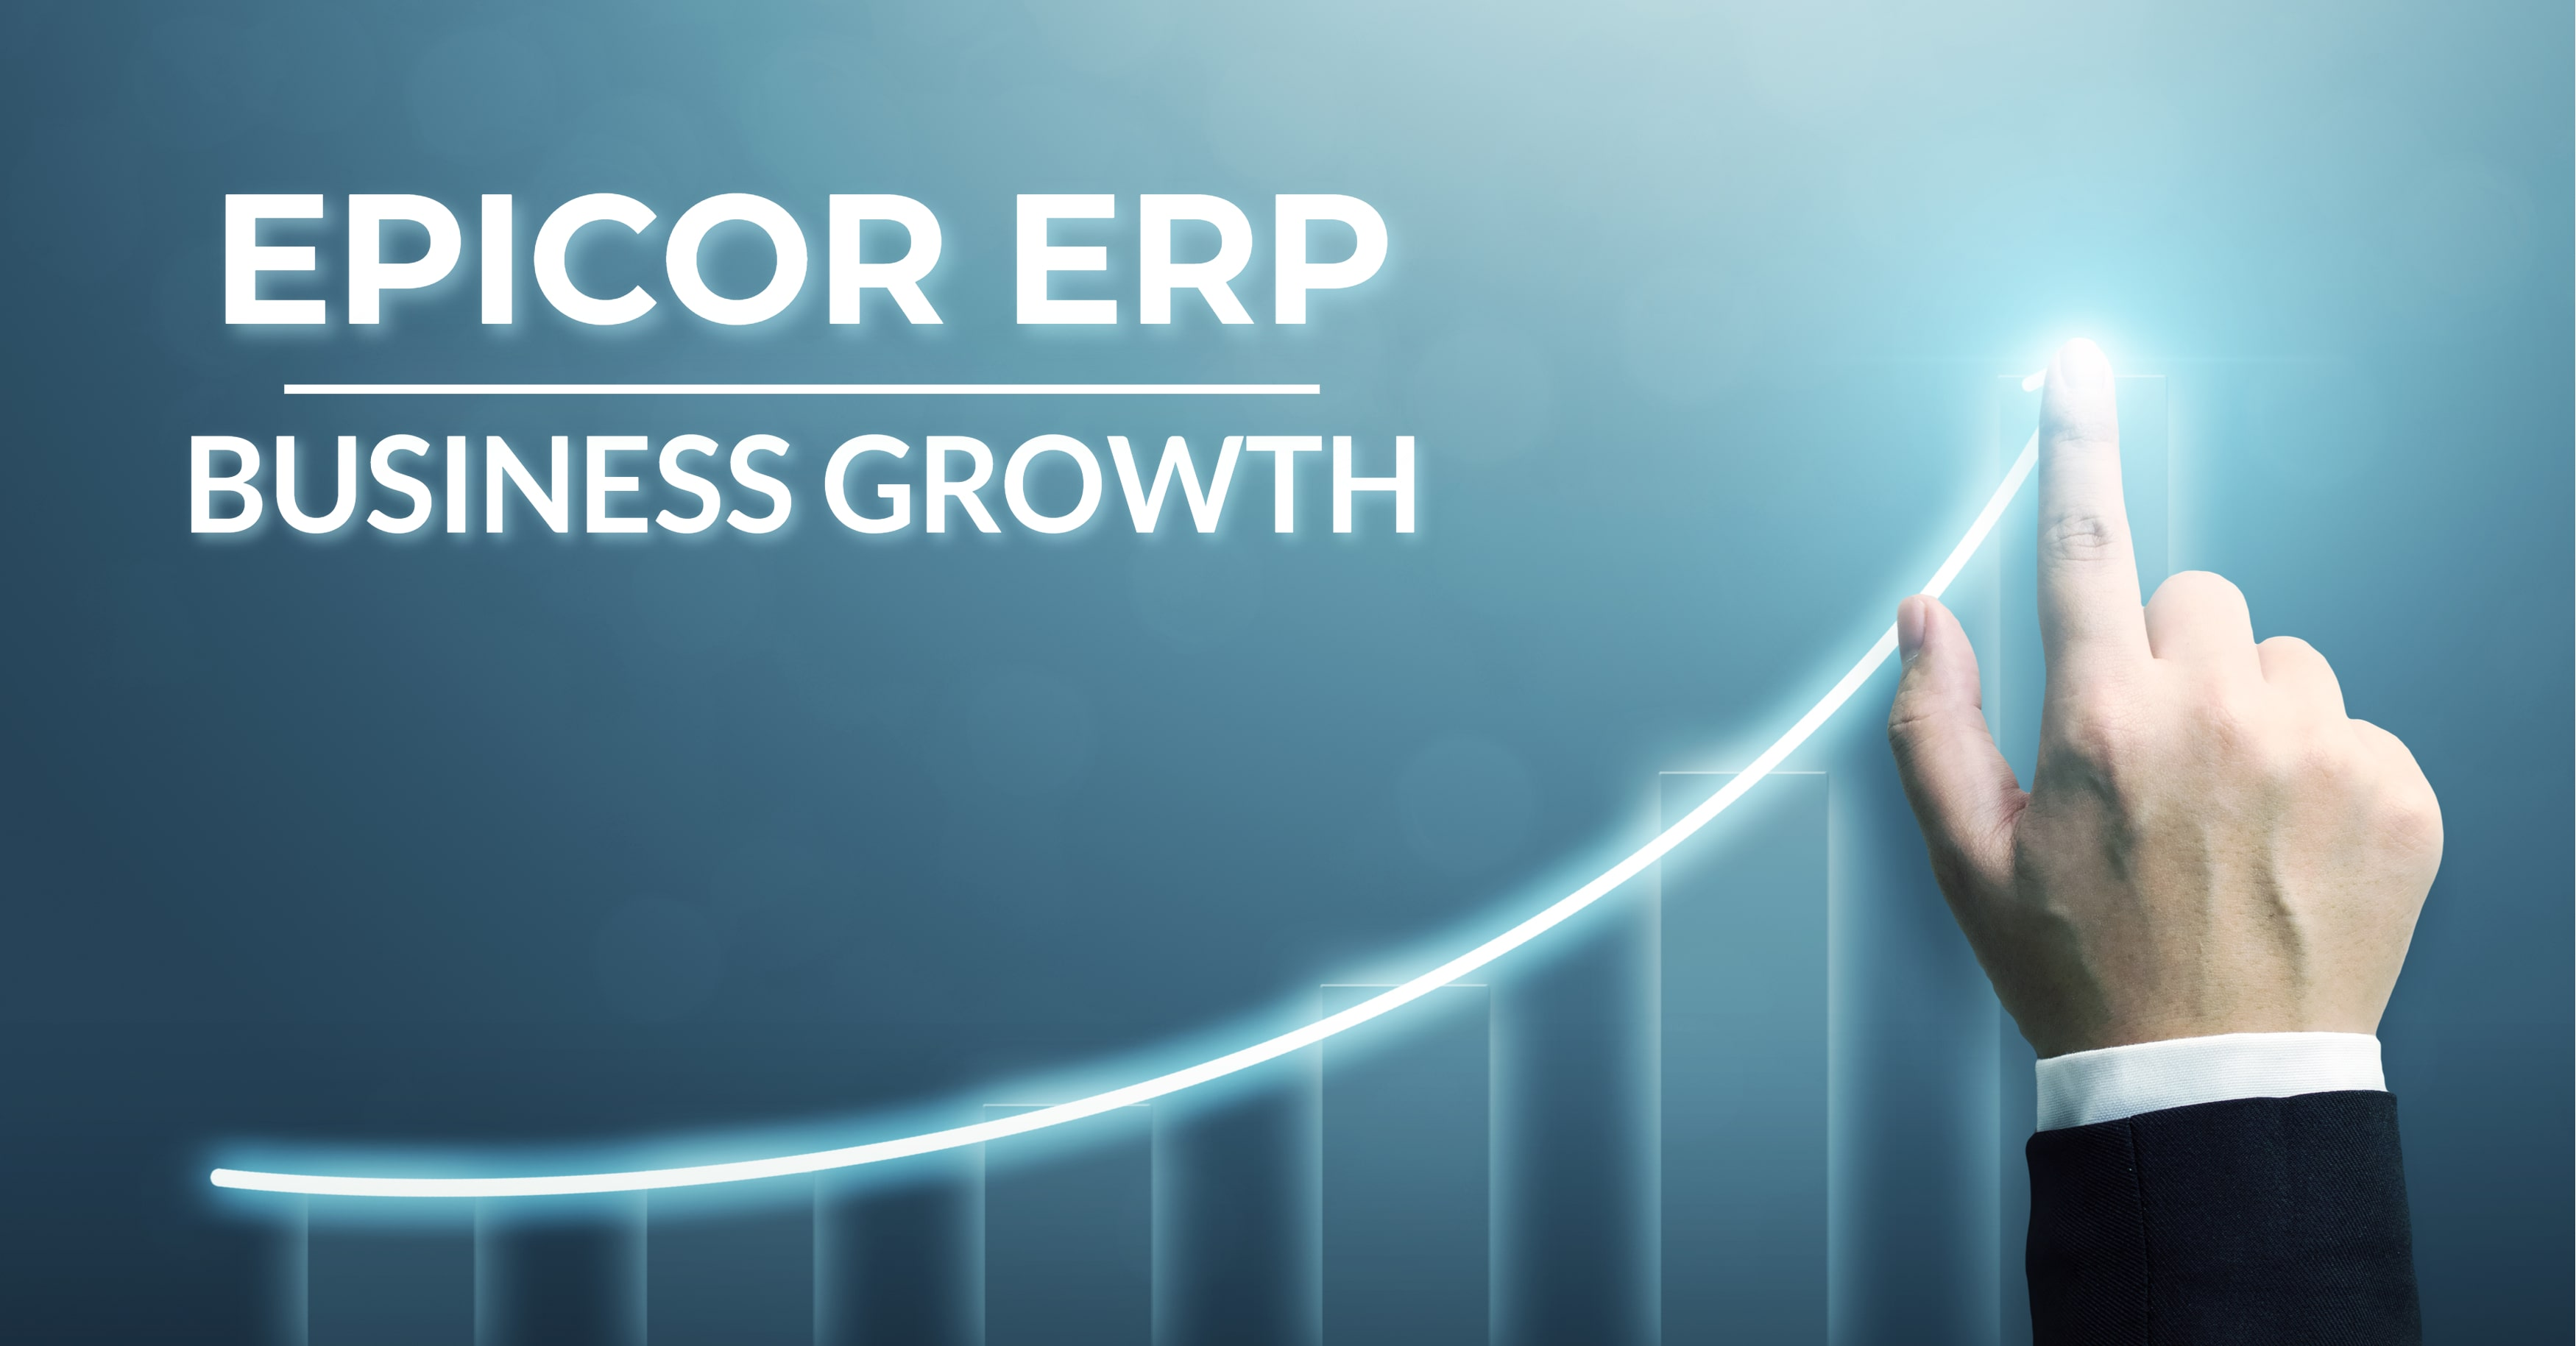 How Does Epicor ERP Drive Business Growth?